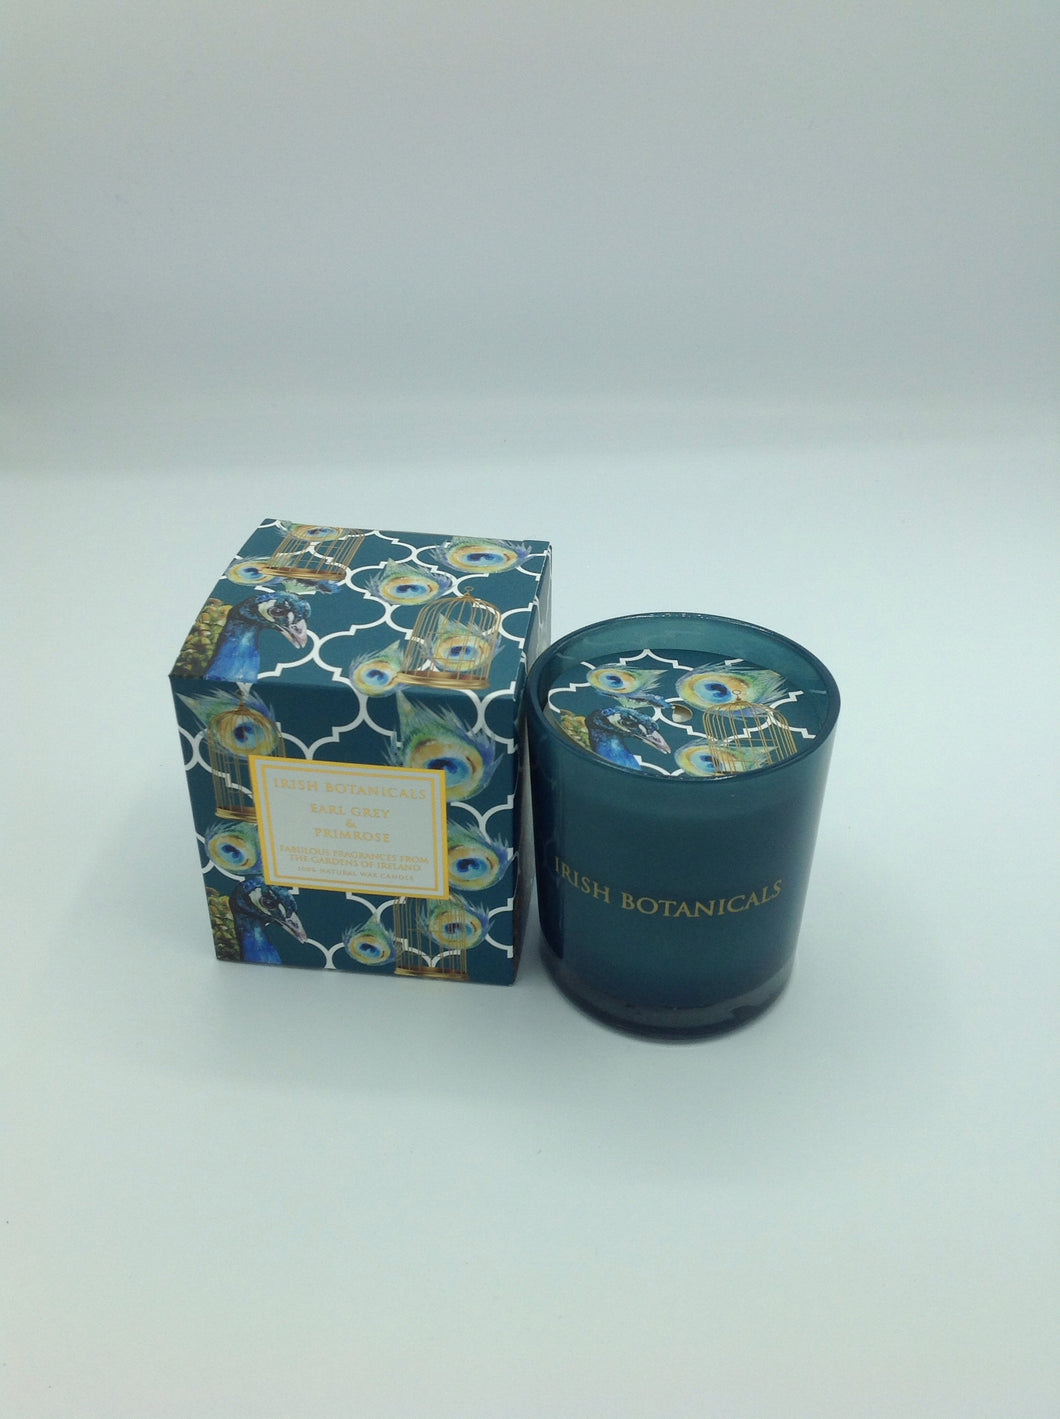 Irish Botanicals Scented Candle